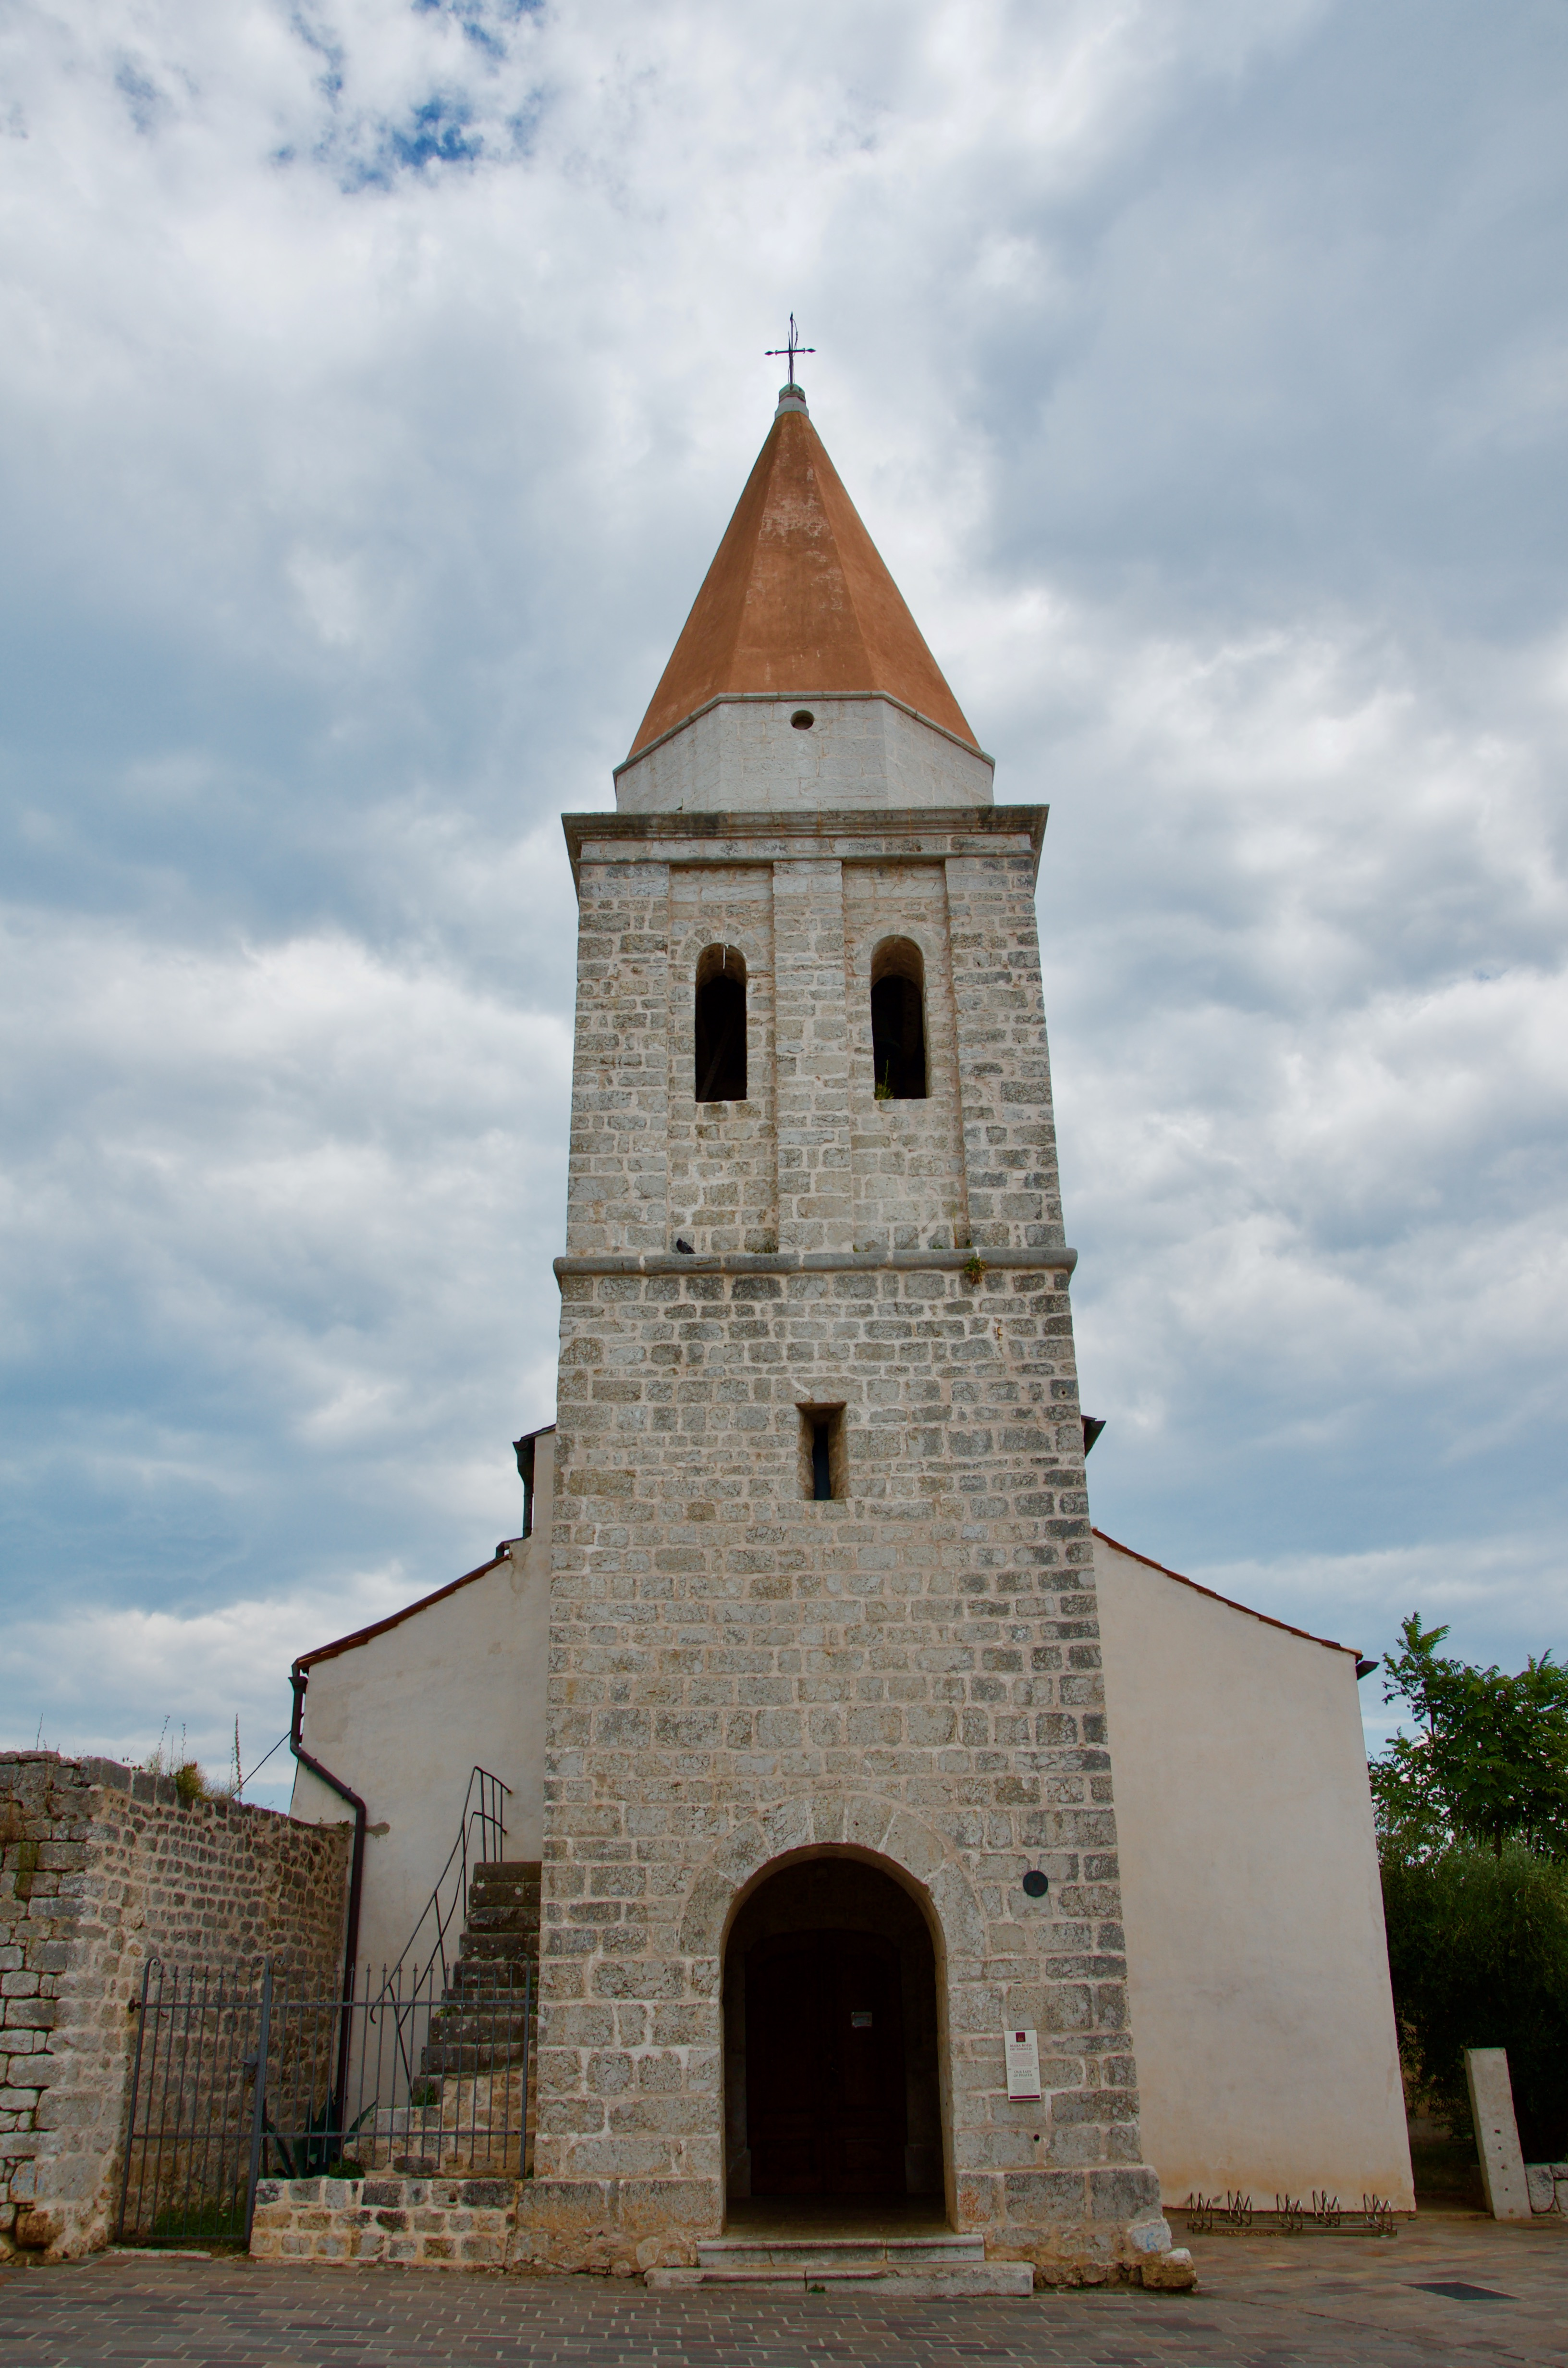 A visit to the city of Krk in Croatia. 4